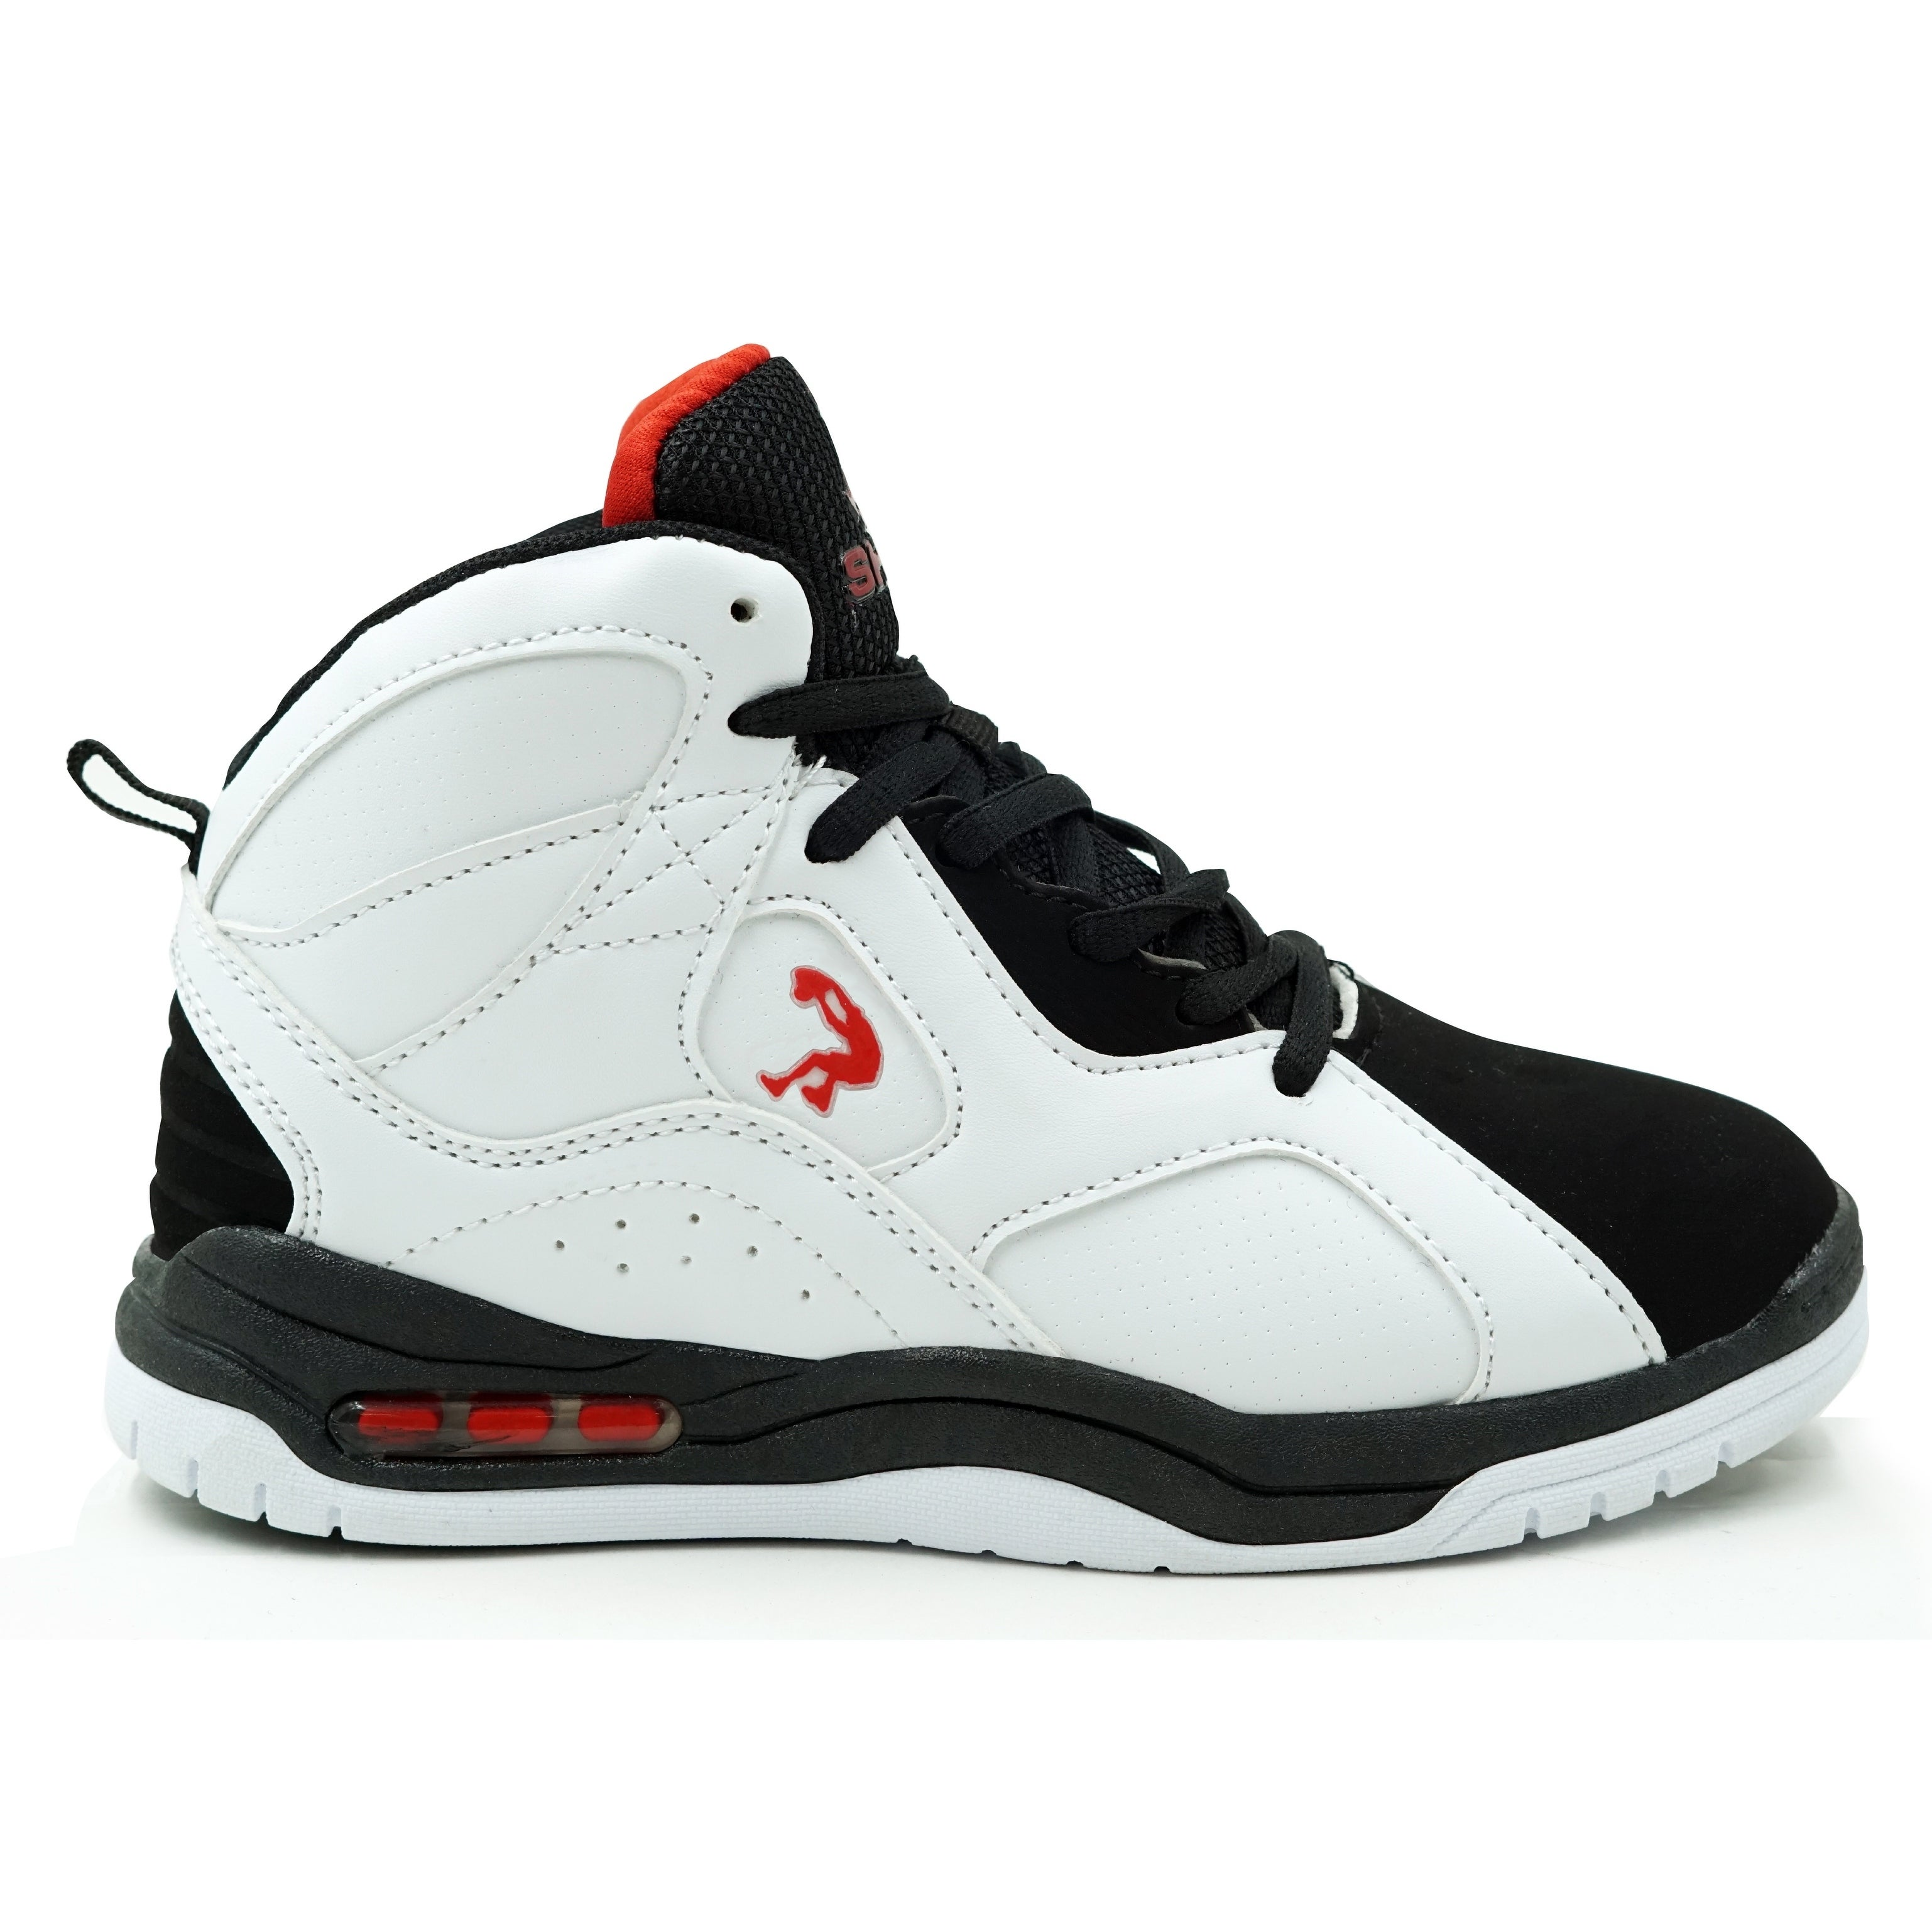 271374c1426 Shop Shaq™ Altitude Youth Athletic Shoe - Free Shipping On Orders ...